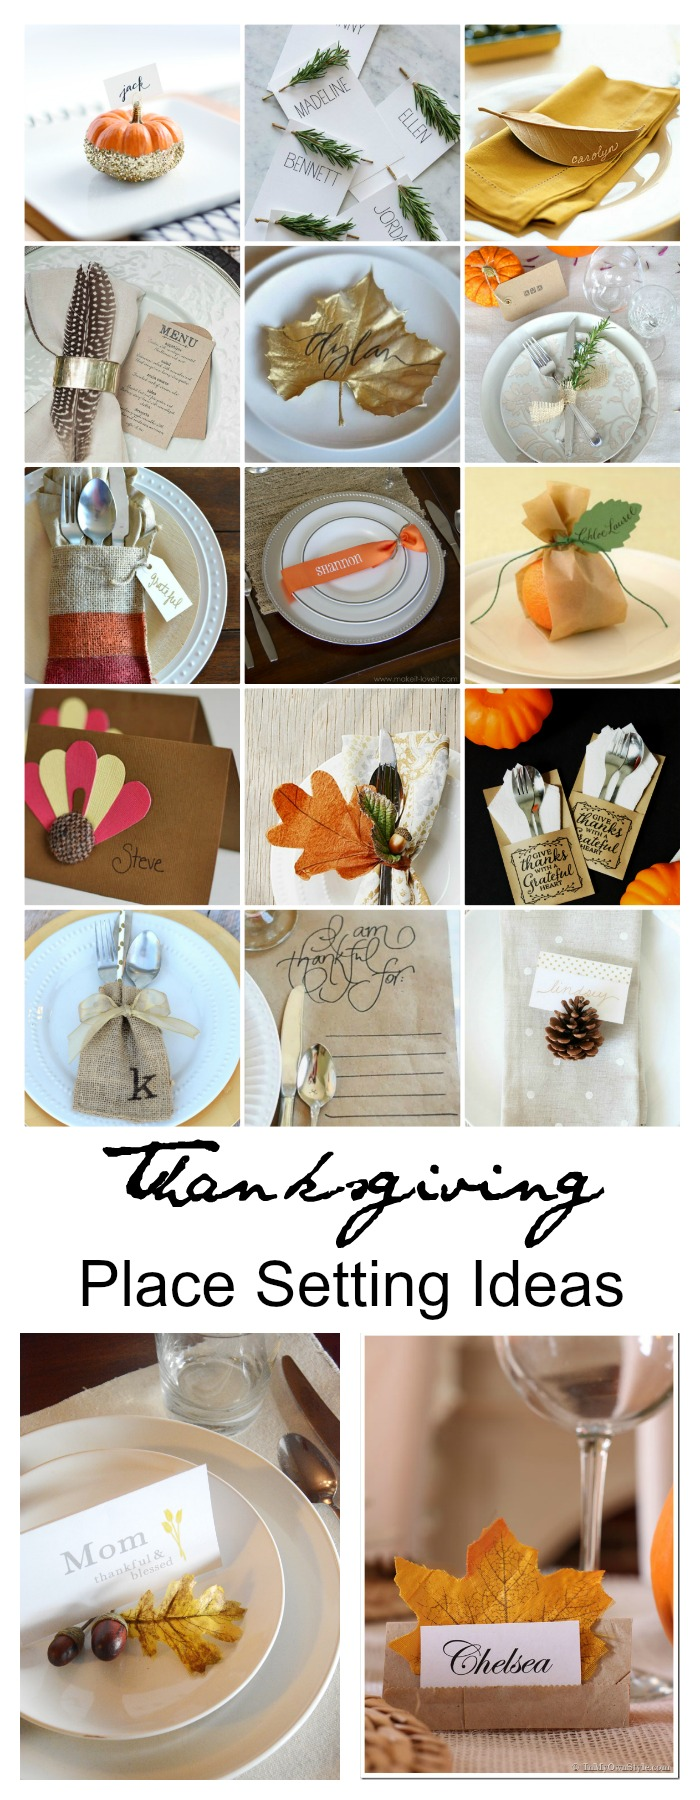 Thanksgiving-Place-Setting-Ideas-Pin